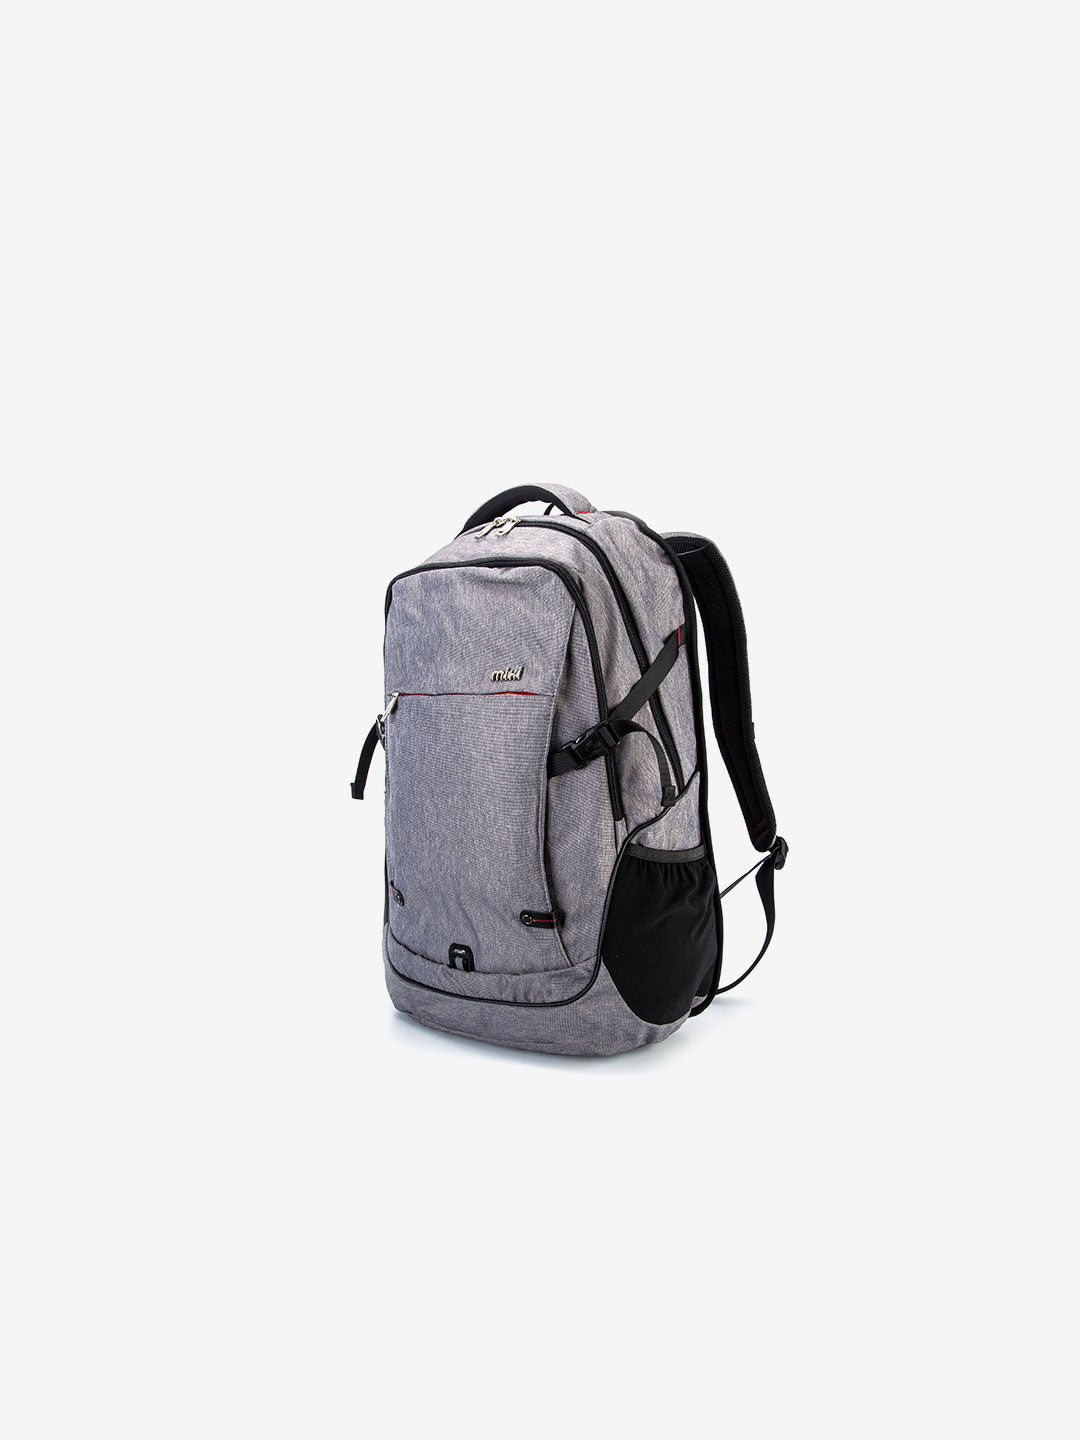 The Every Day Backpack in Charcoal Grey